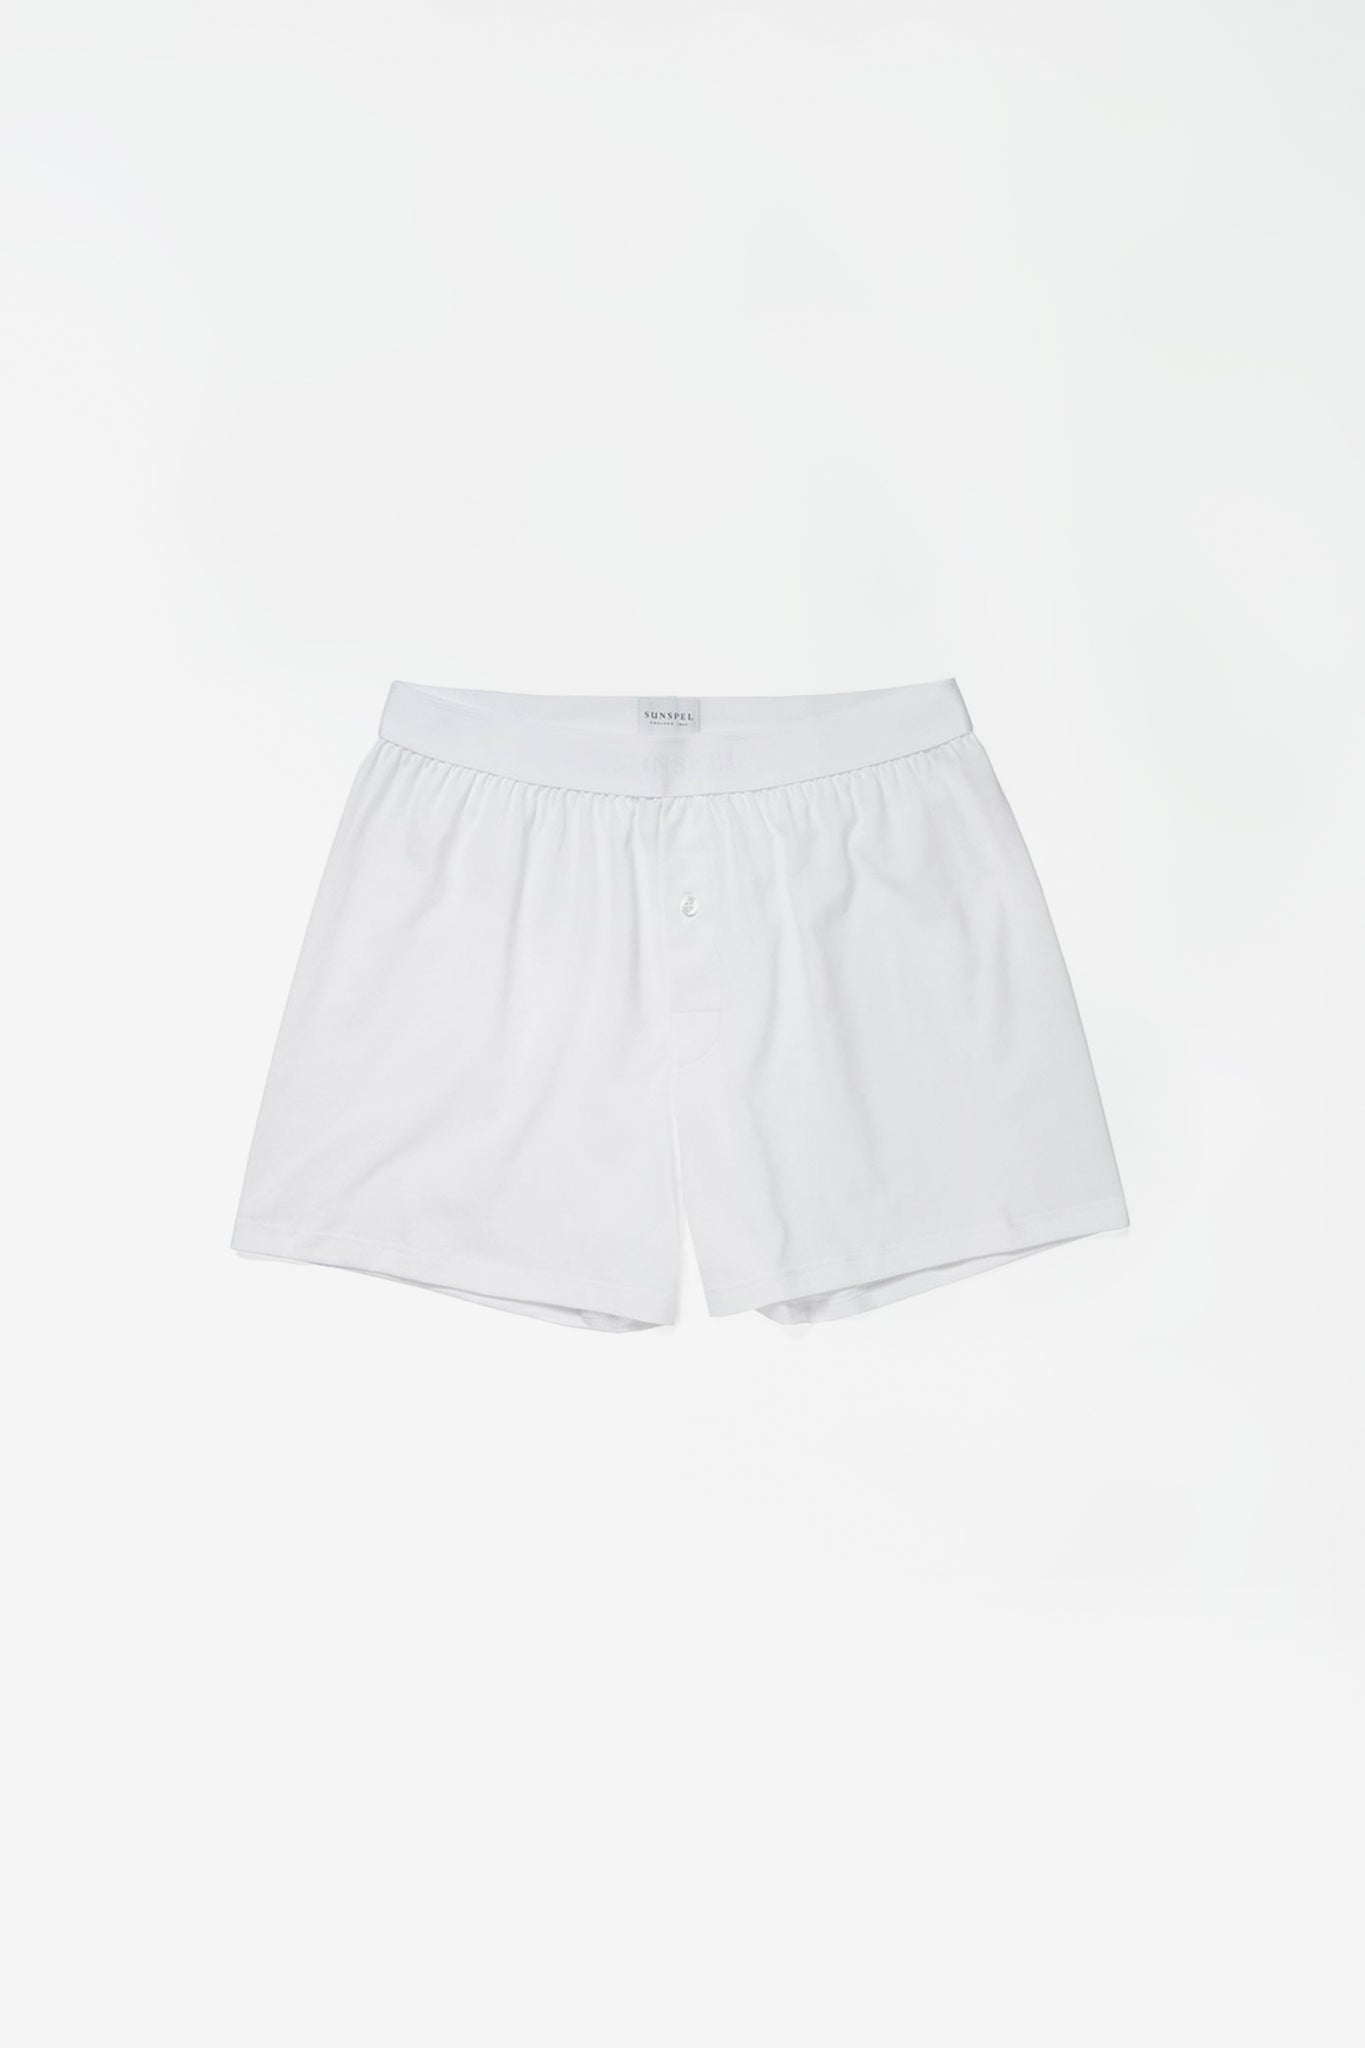 Superfine cotton 1 button short white